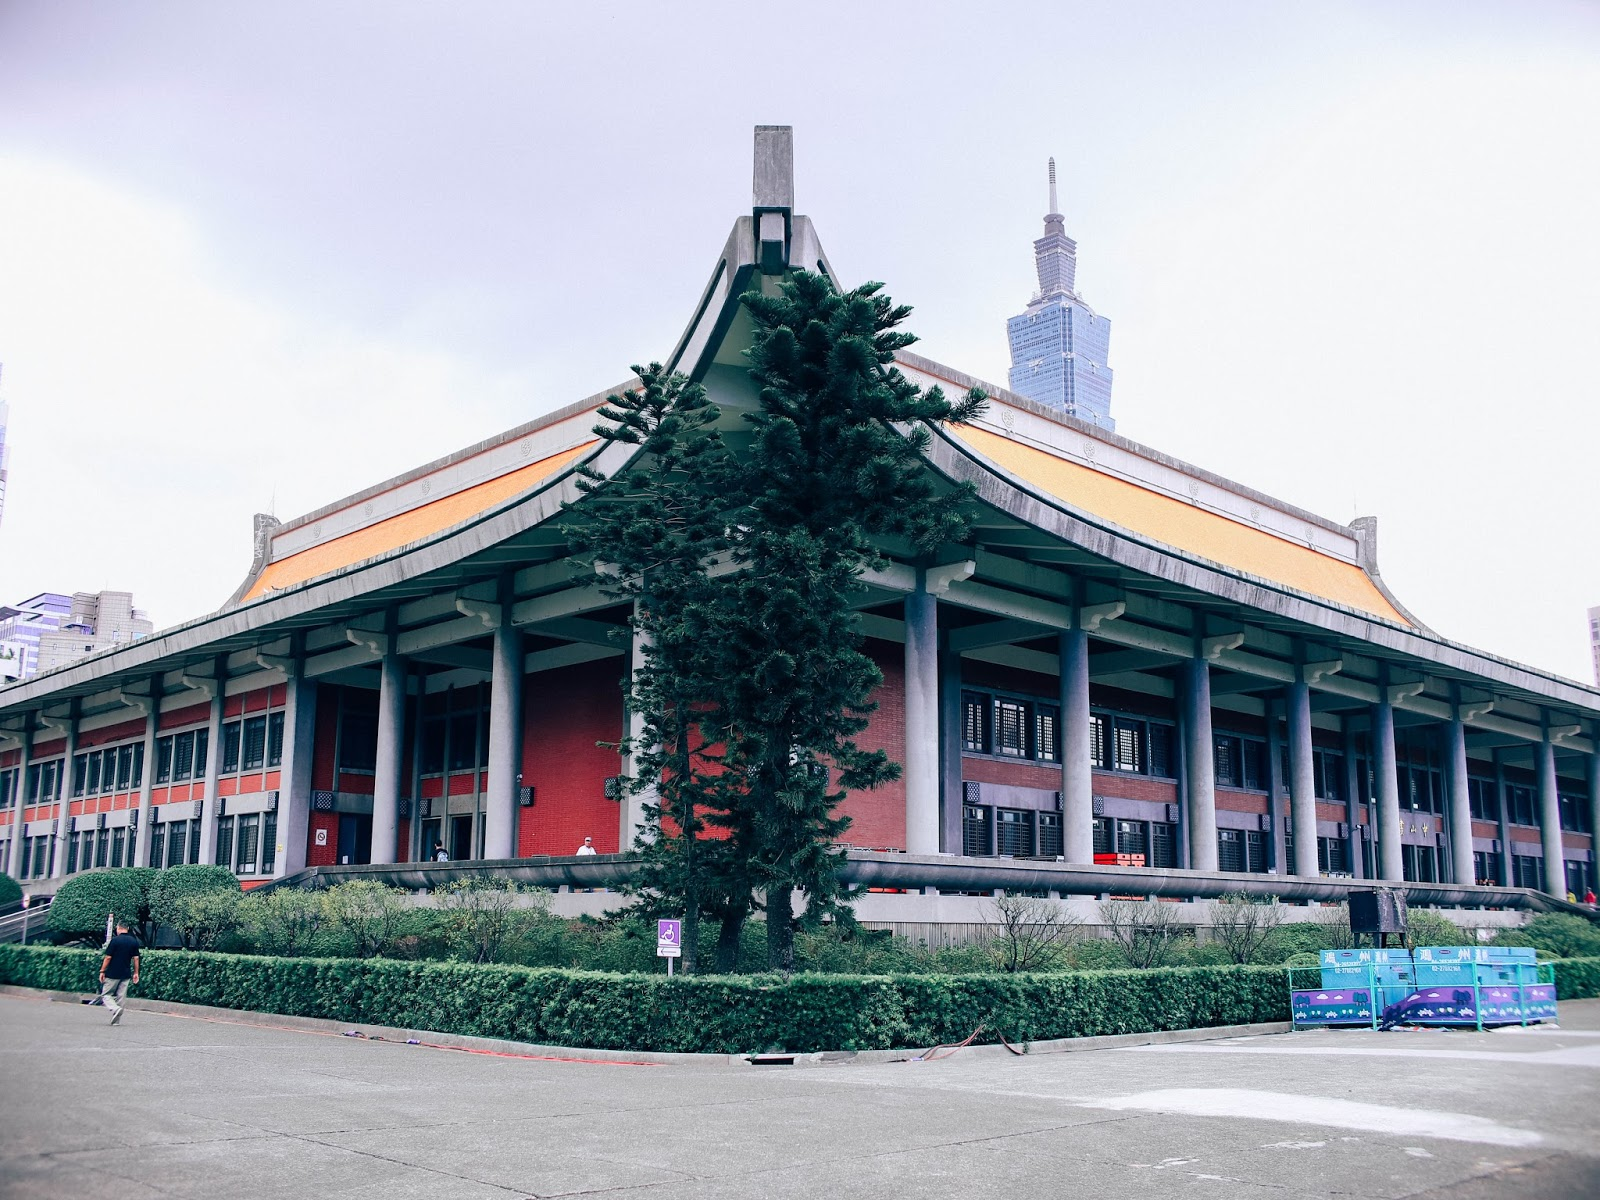 chiang kai shek memorial hall, taipei, taiwan, review